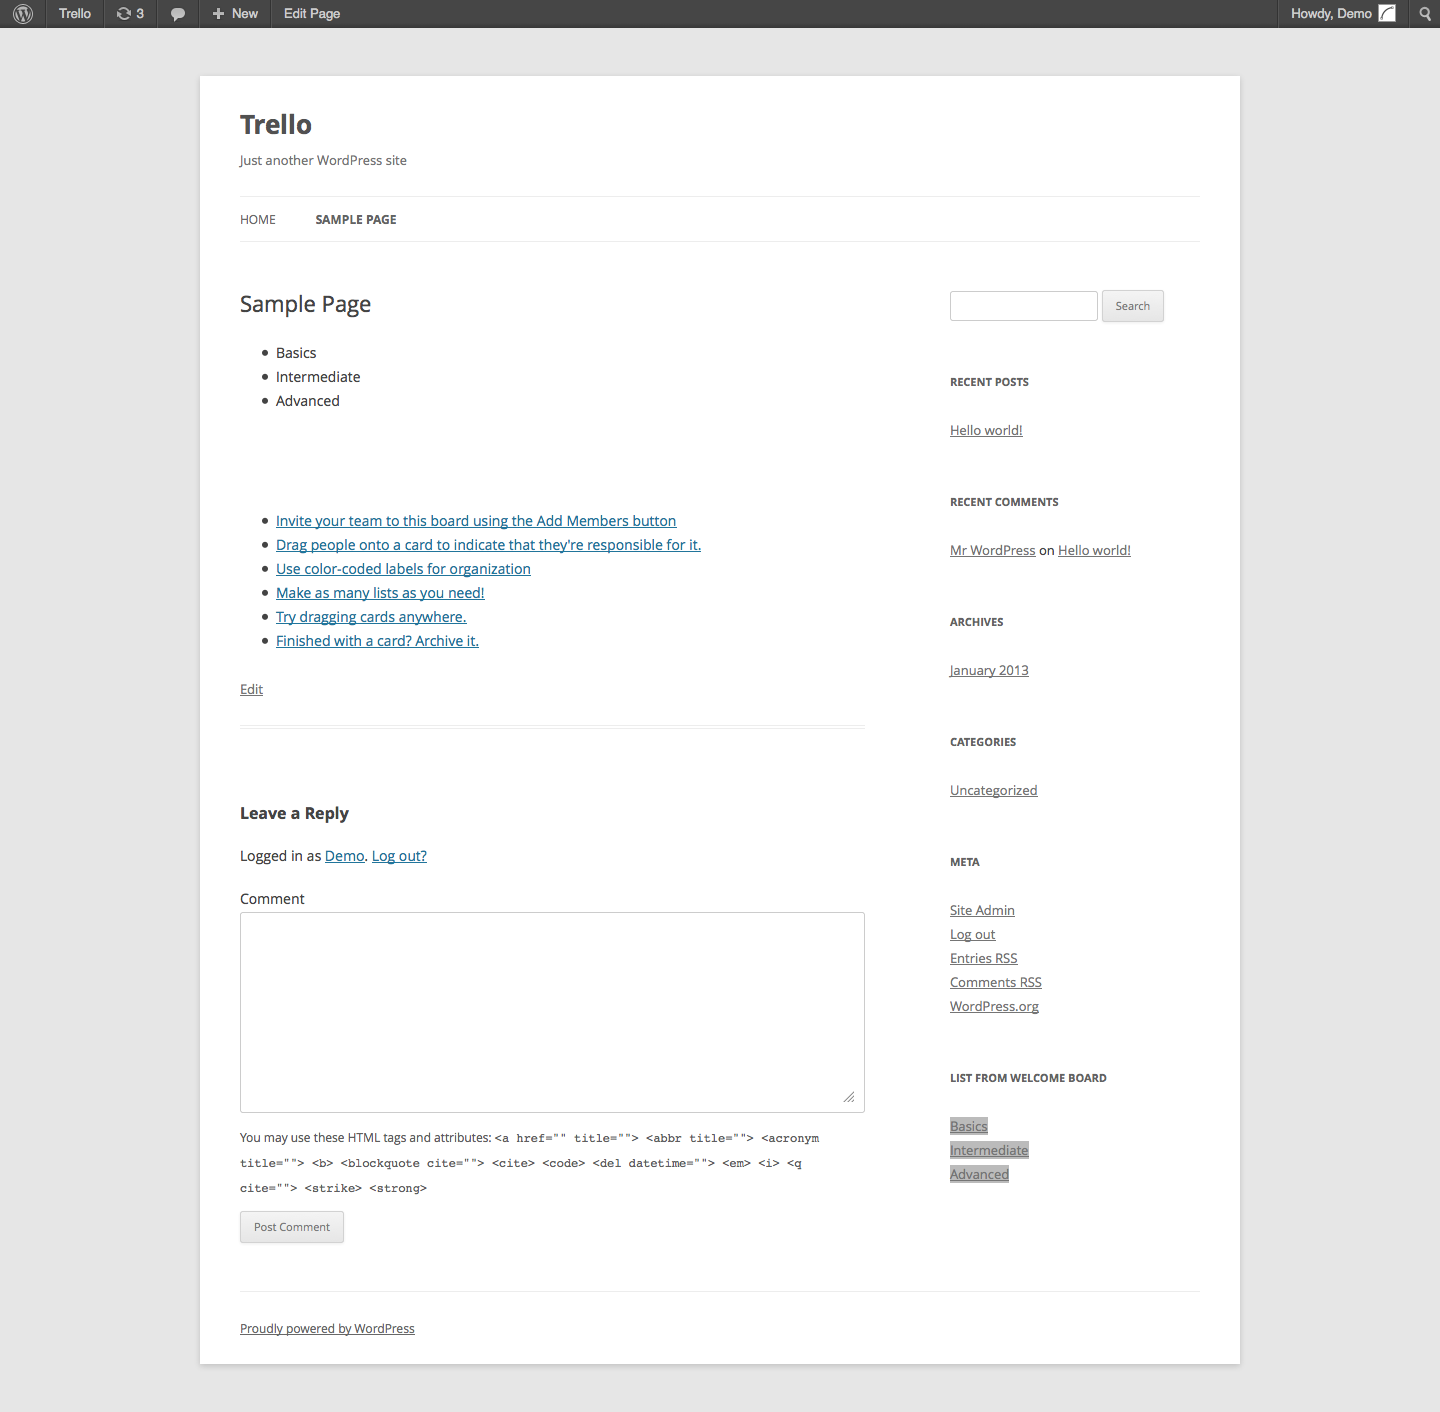 wp-trello screenshot 4